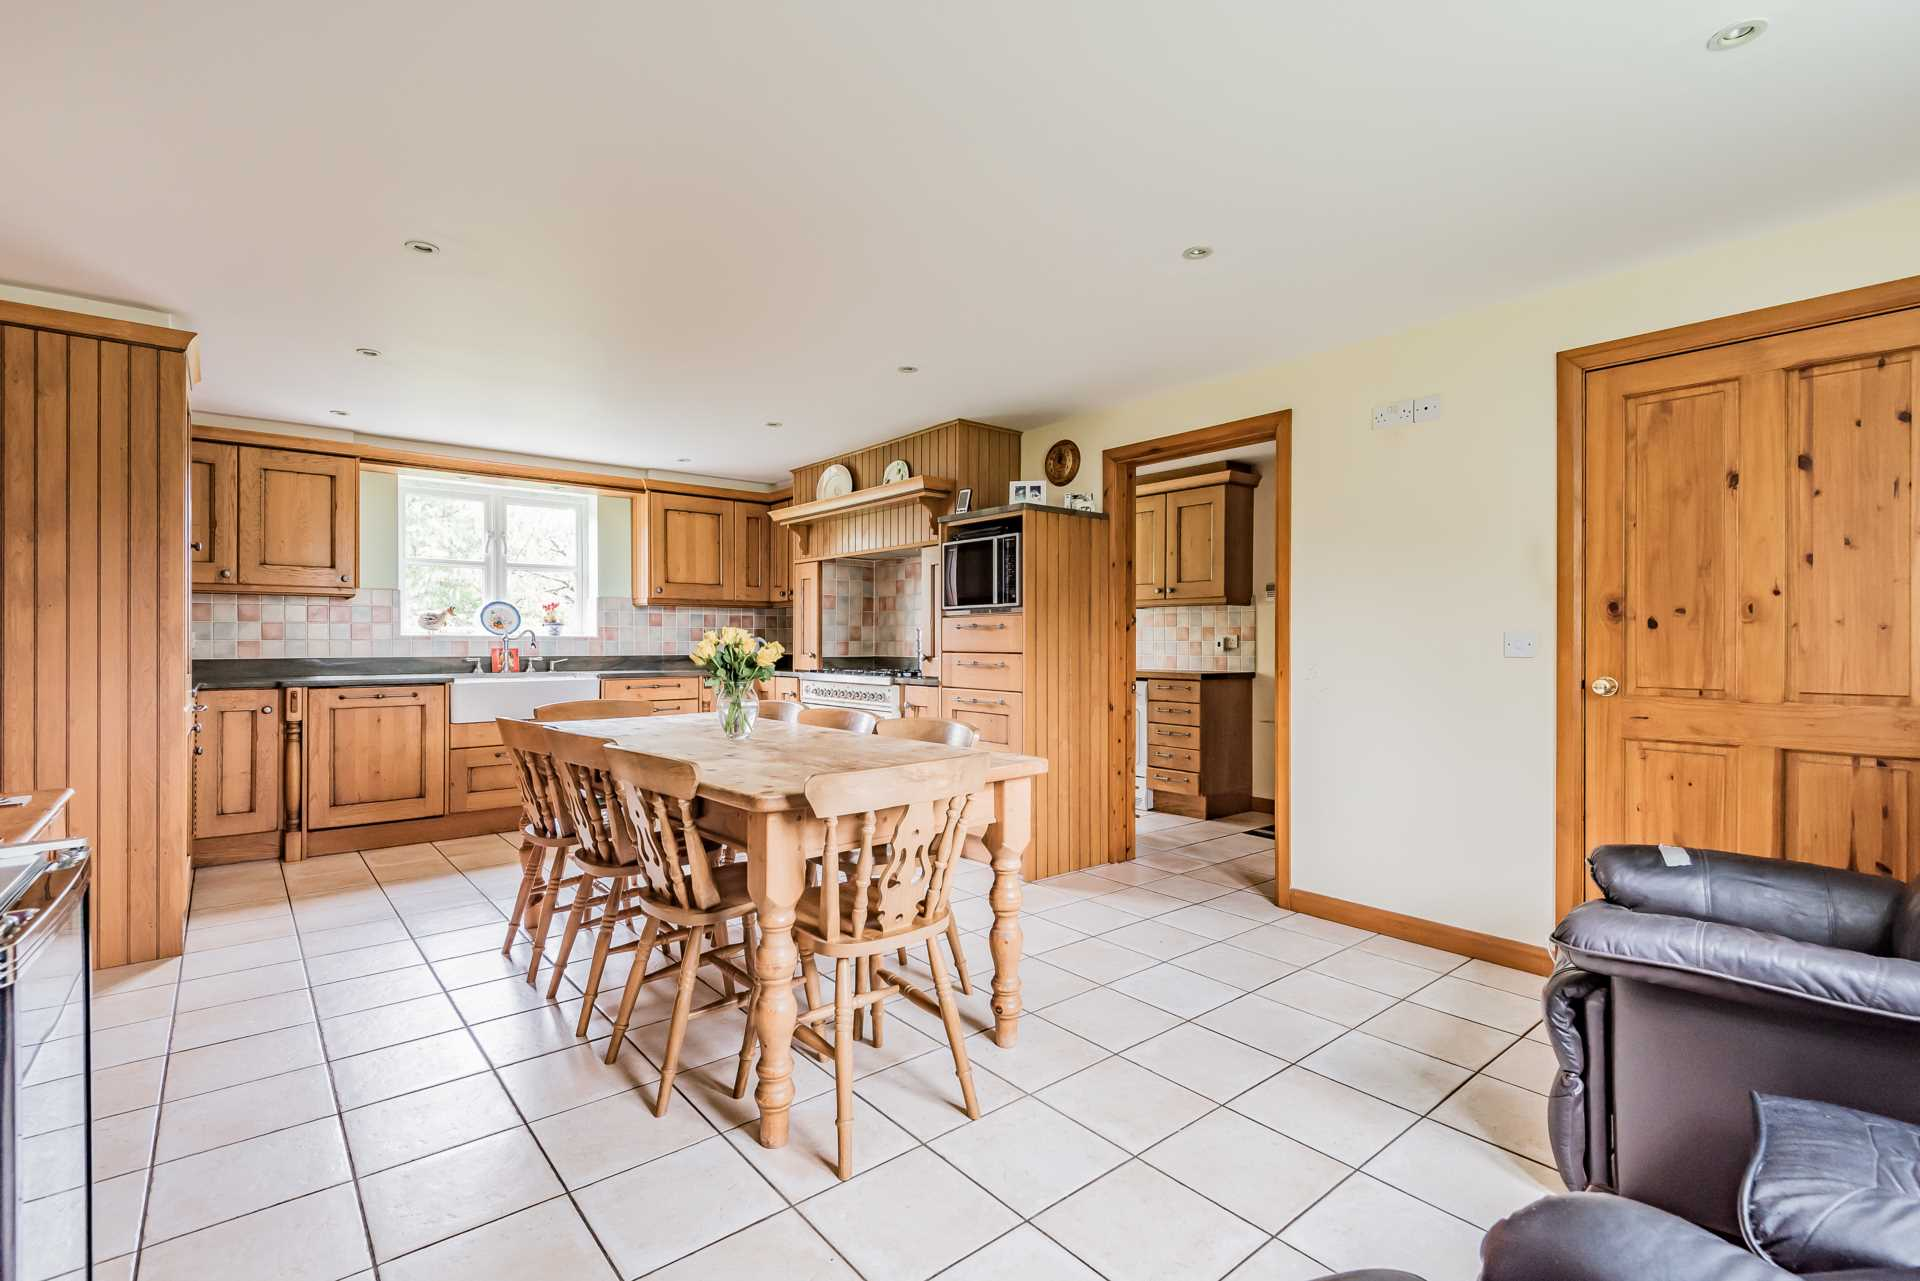 4 bed detached house for sale in Wagtails, Whatcombe Lane, Winterborne Whitechurch, Blandford Forum  - Property Image 11